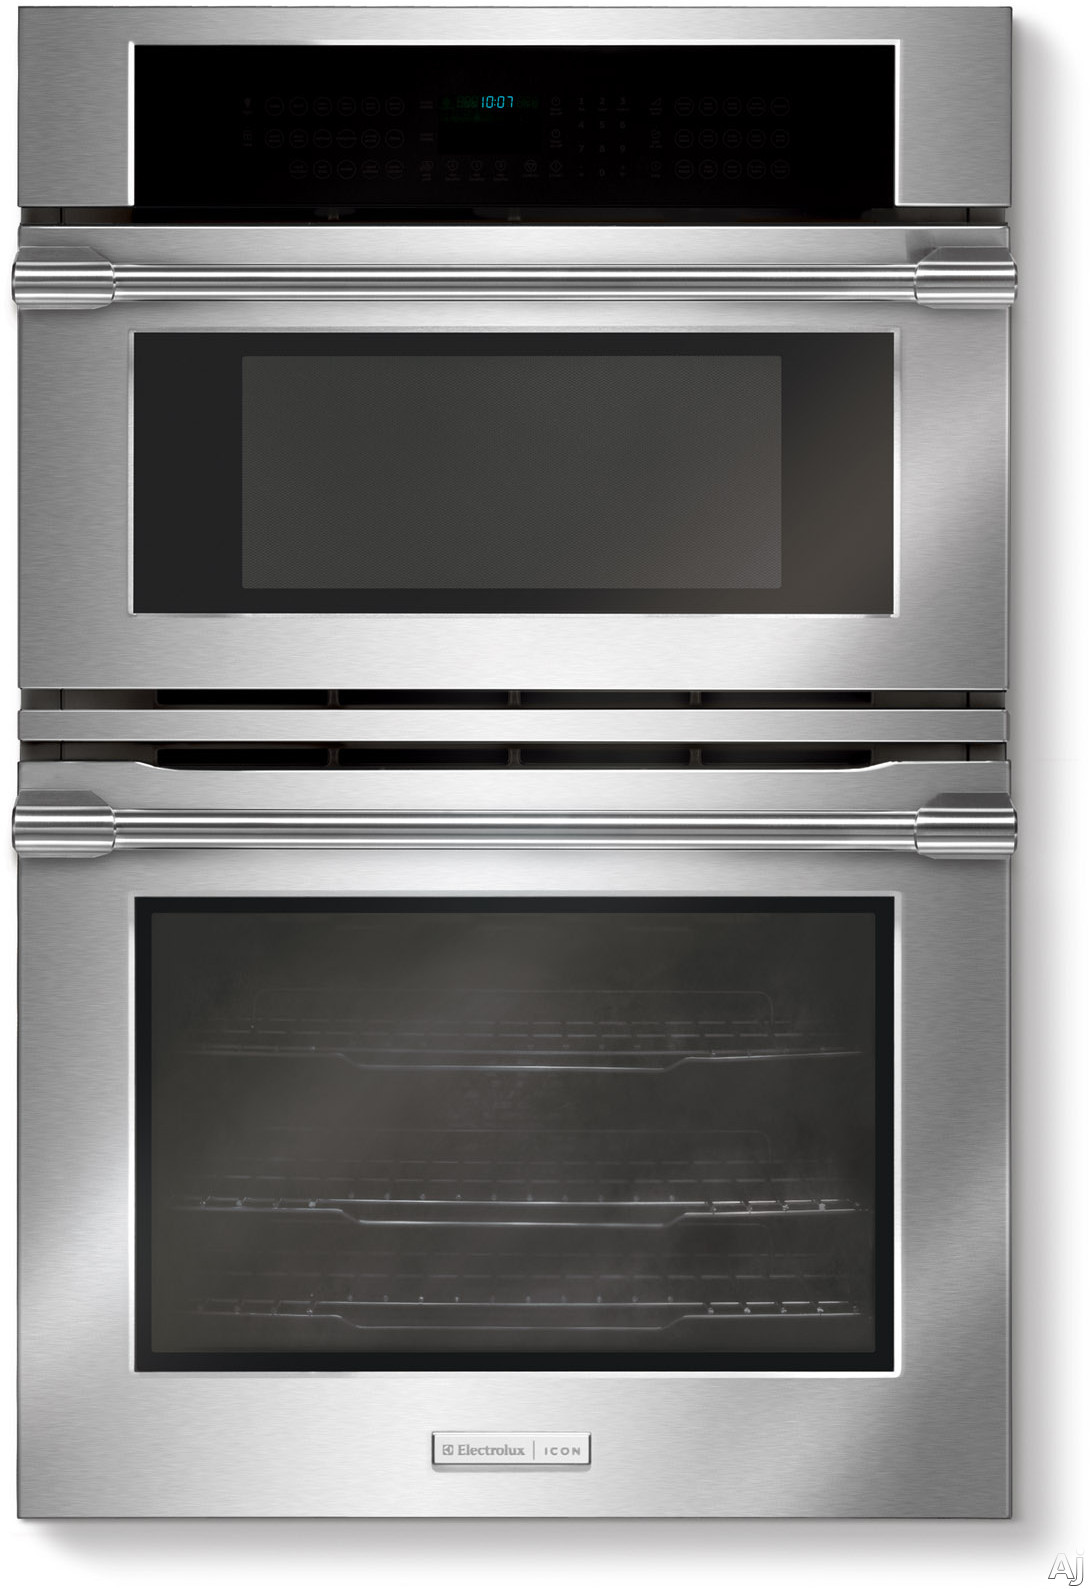 Electrolux E30mc75jps 30 Inch Combination Wall Oven With 4